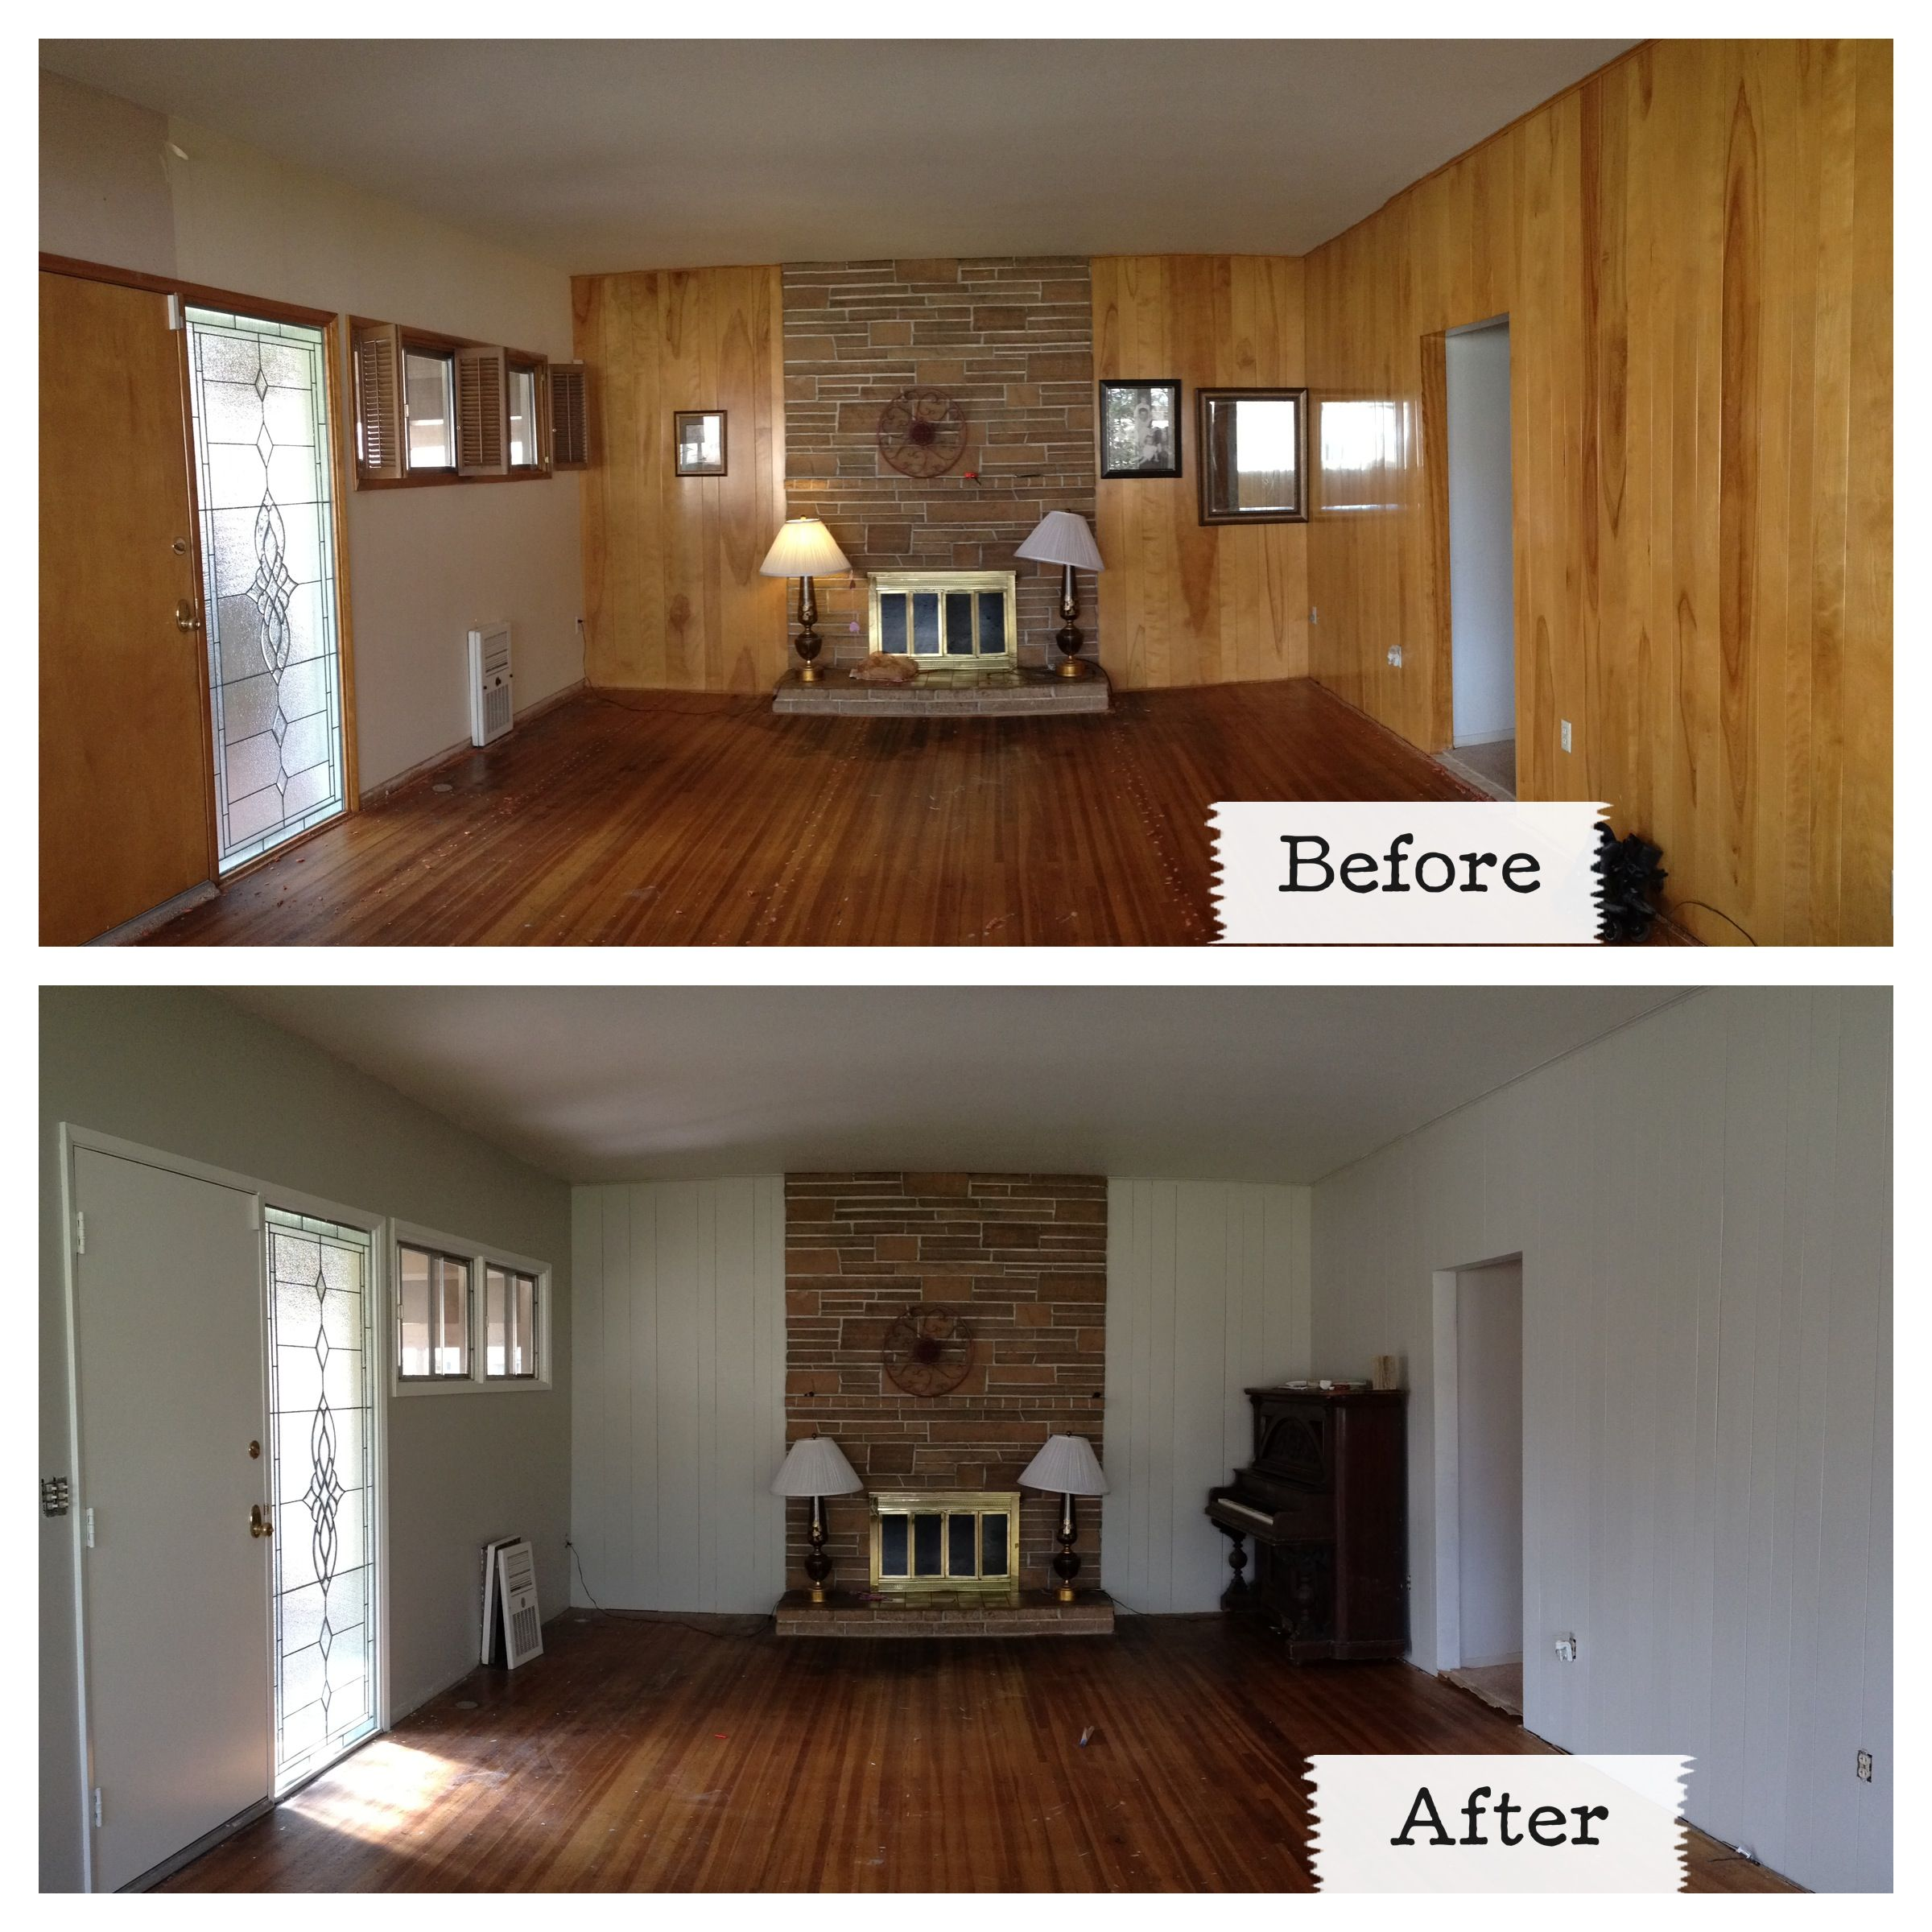 Painting Wood Trim White Before And After: Walls Painted In Revere Pewter, Trim In Swiss Coffee, Both